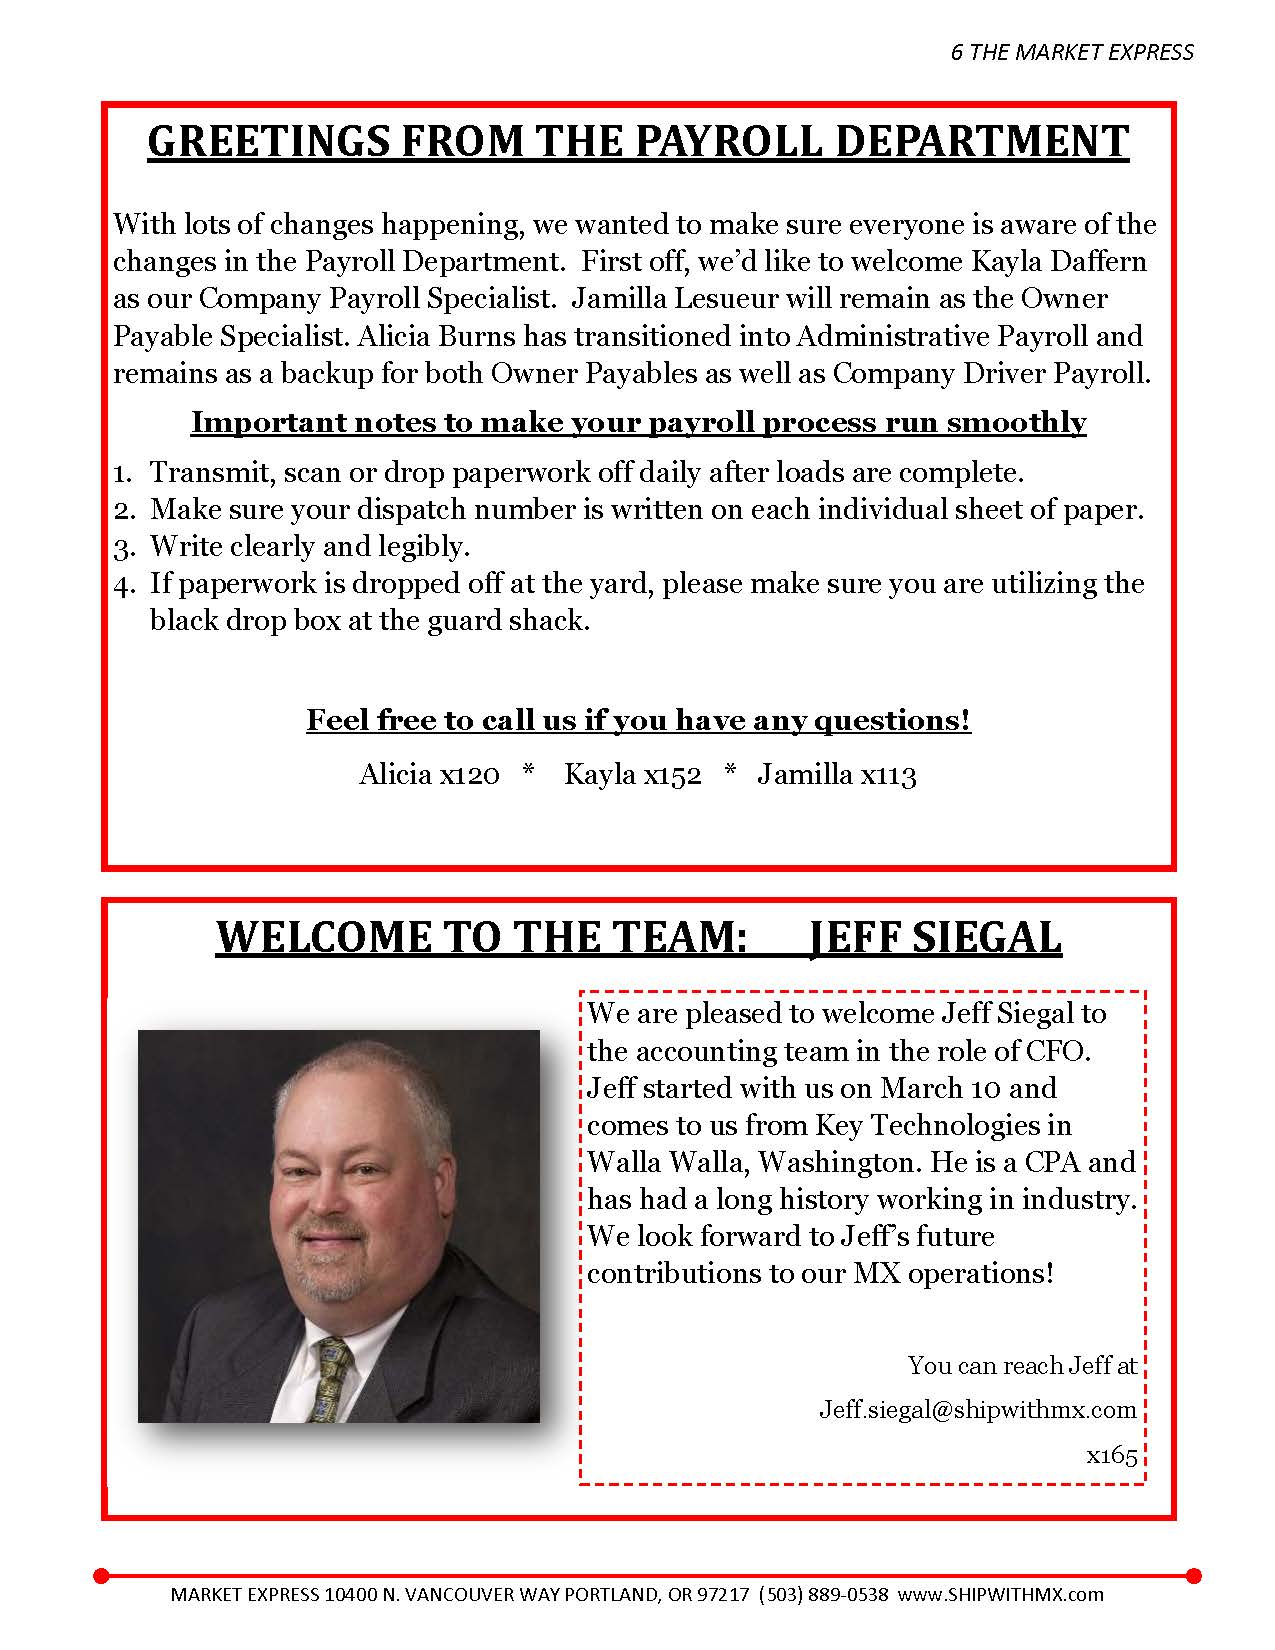 Mar2020_Vol3Iss1_Newsletter_Page_6